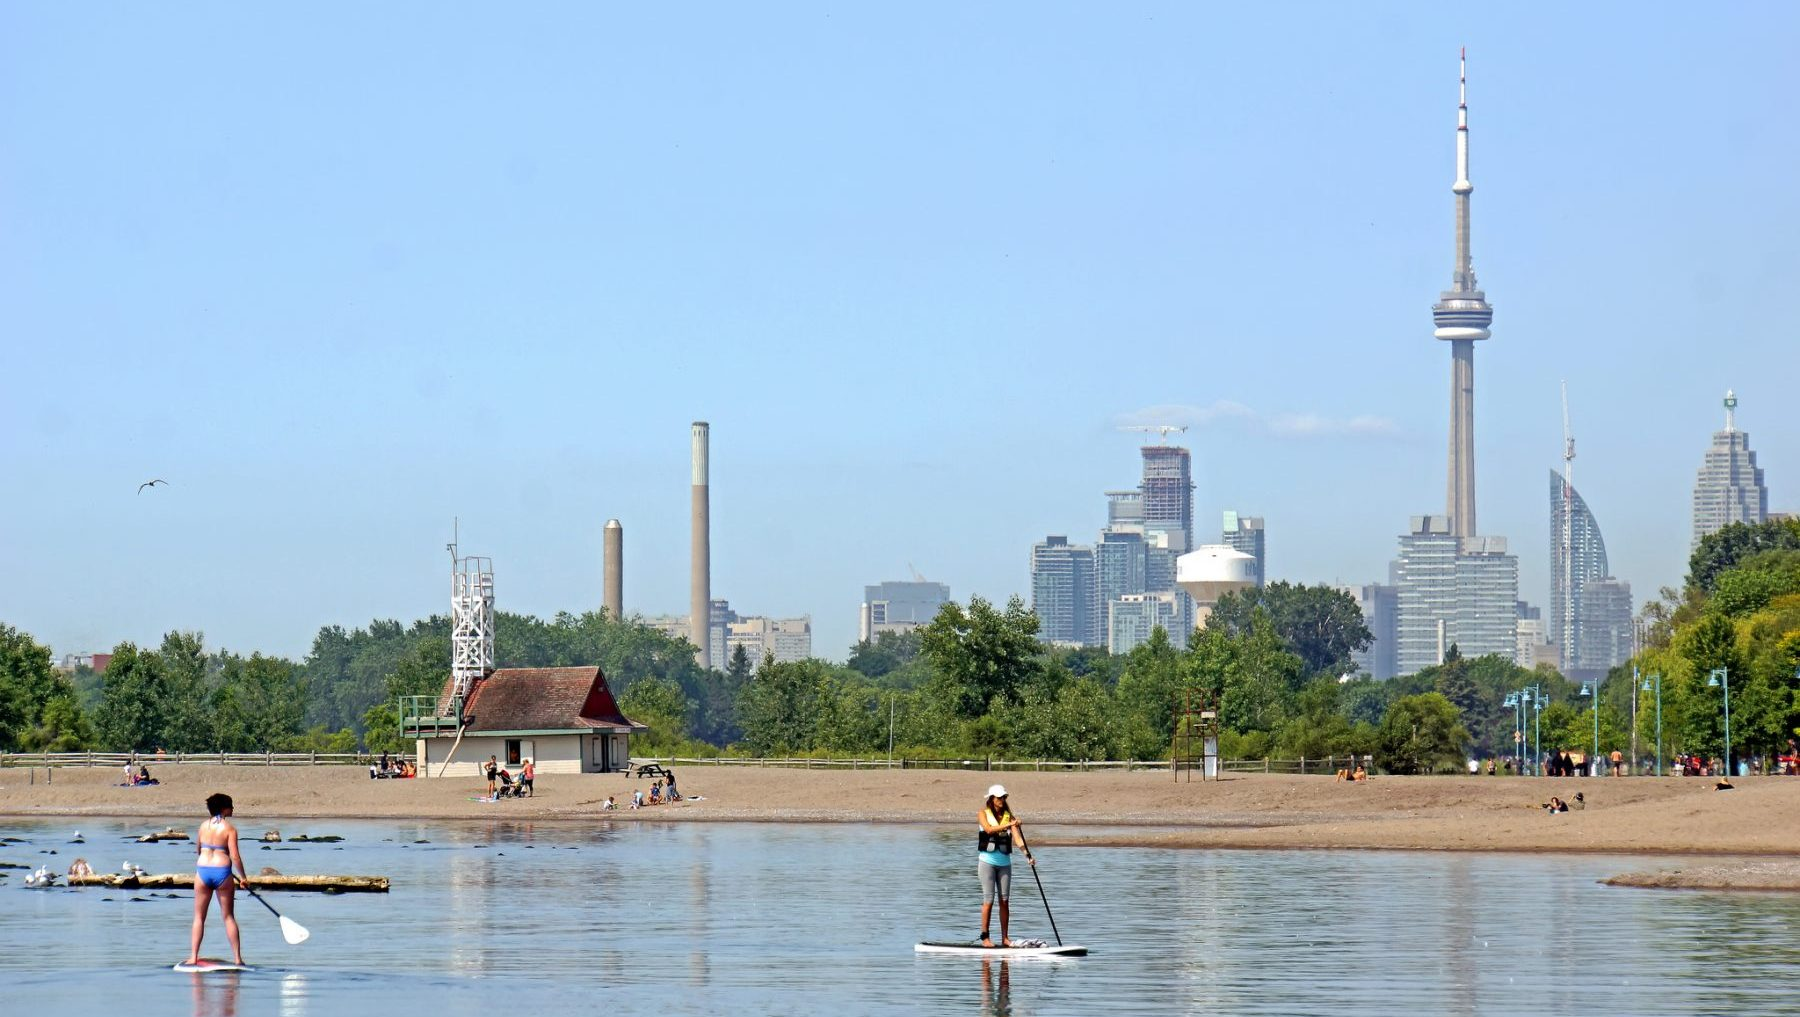 Toronto remains under heat warning as humid conditions continue